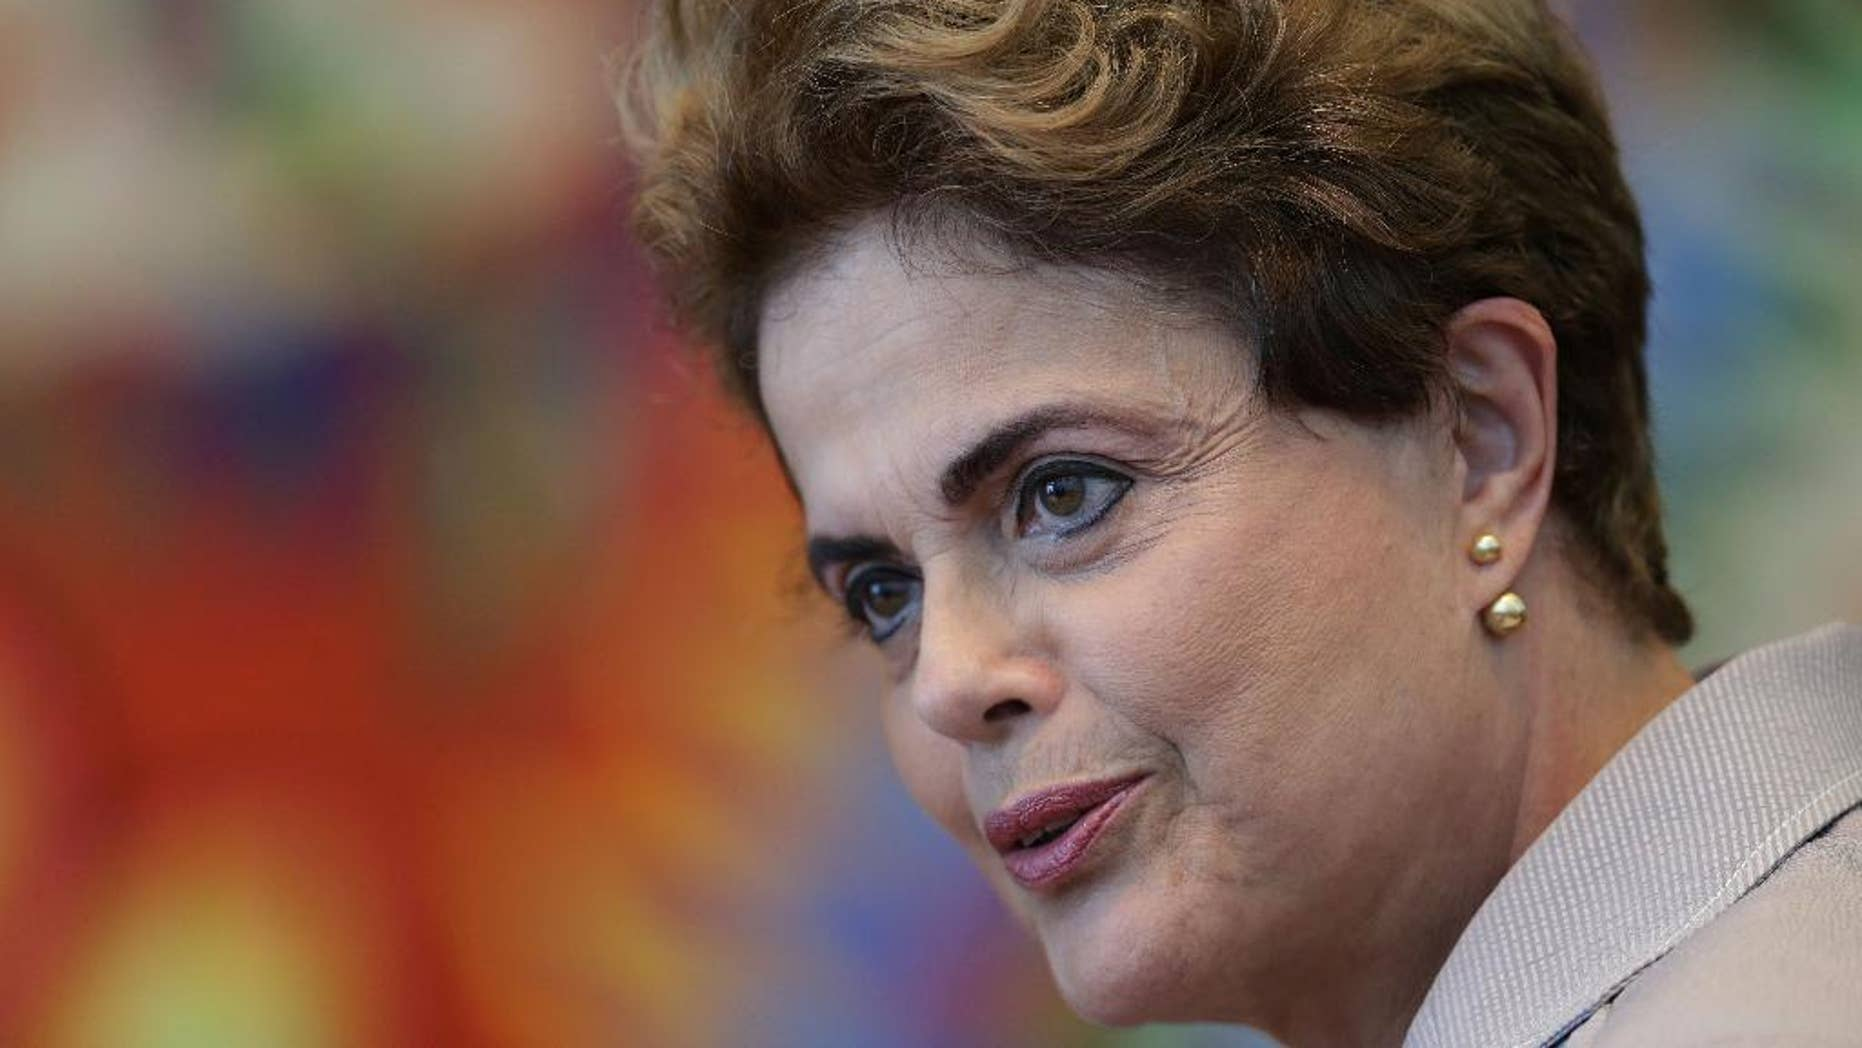 FILE - In this June 14, 2016 file photo, suspended Brazilian President Dilma Rousseff speaks during a press conference for foreign journalists at the Alvorada residential palace, in Brasilia, Brazil. Brazil's Senate voted Wednesday, Aug. 10, 2016, to put Rousseff on trial for allegedly breaking fiscal rules in her managing of the federal budget. (AP Photo/Eraldo Peres, File)